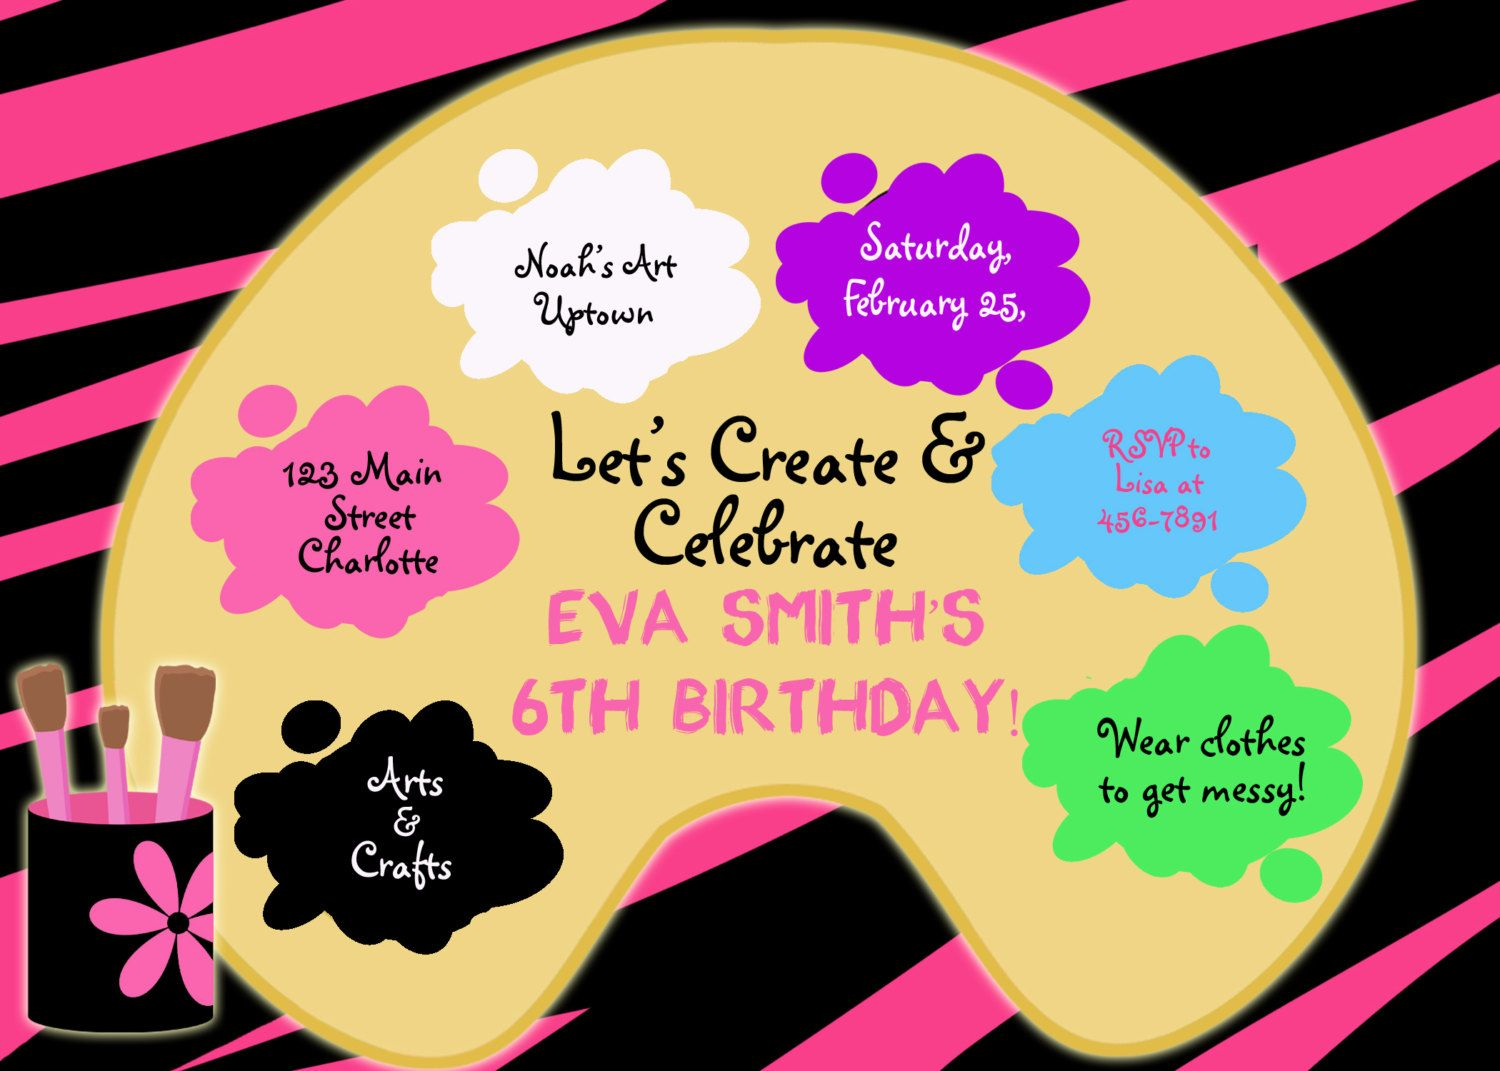 invitation | Party Ideas | Pinterest | Art party, Birthdays and ...